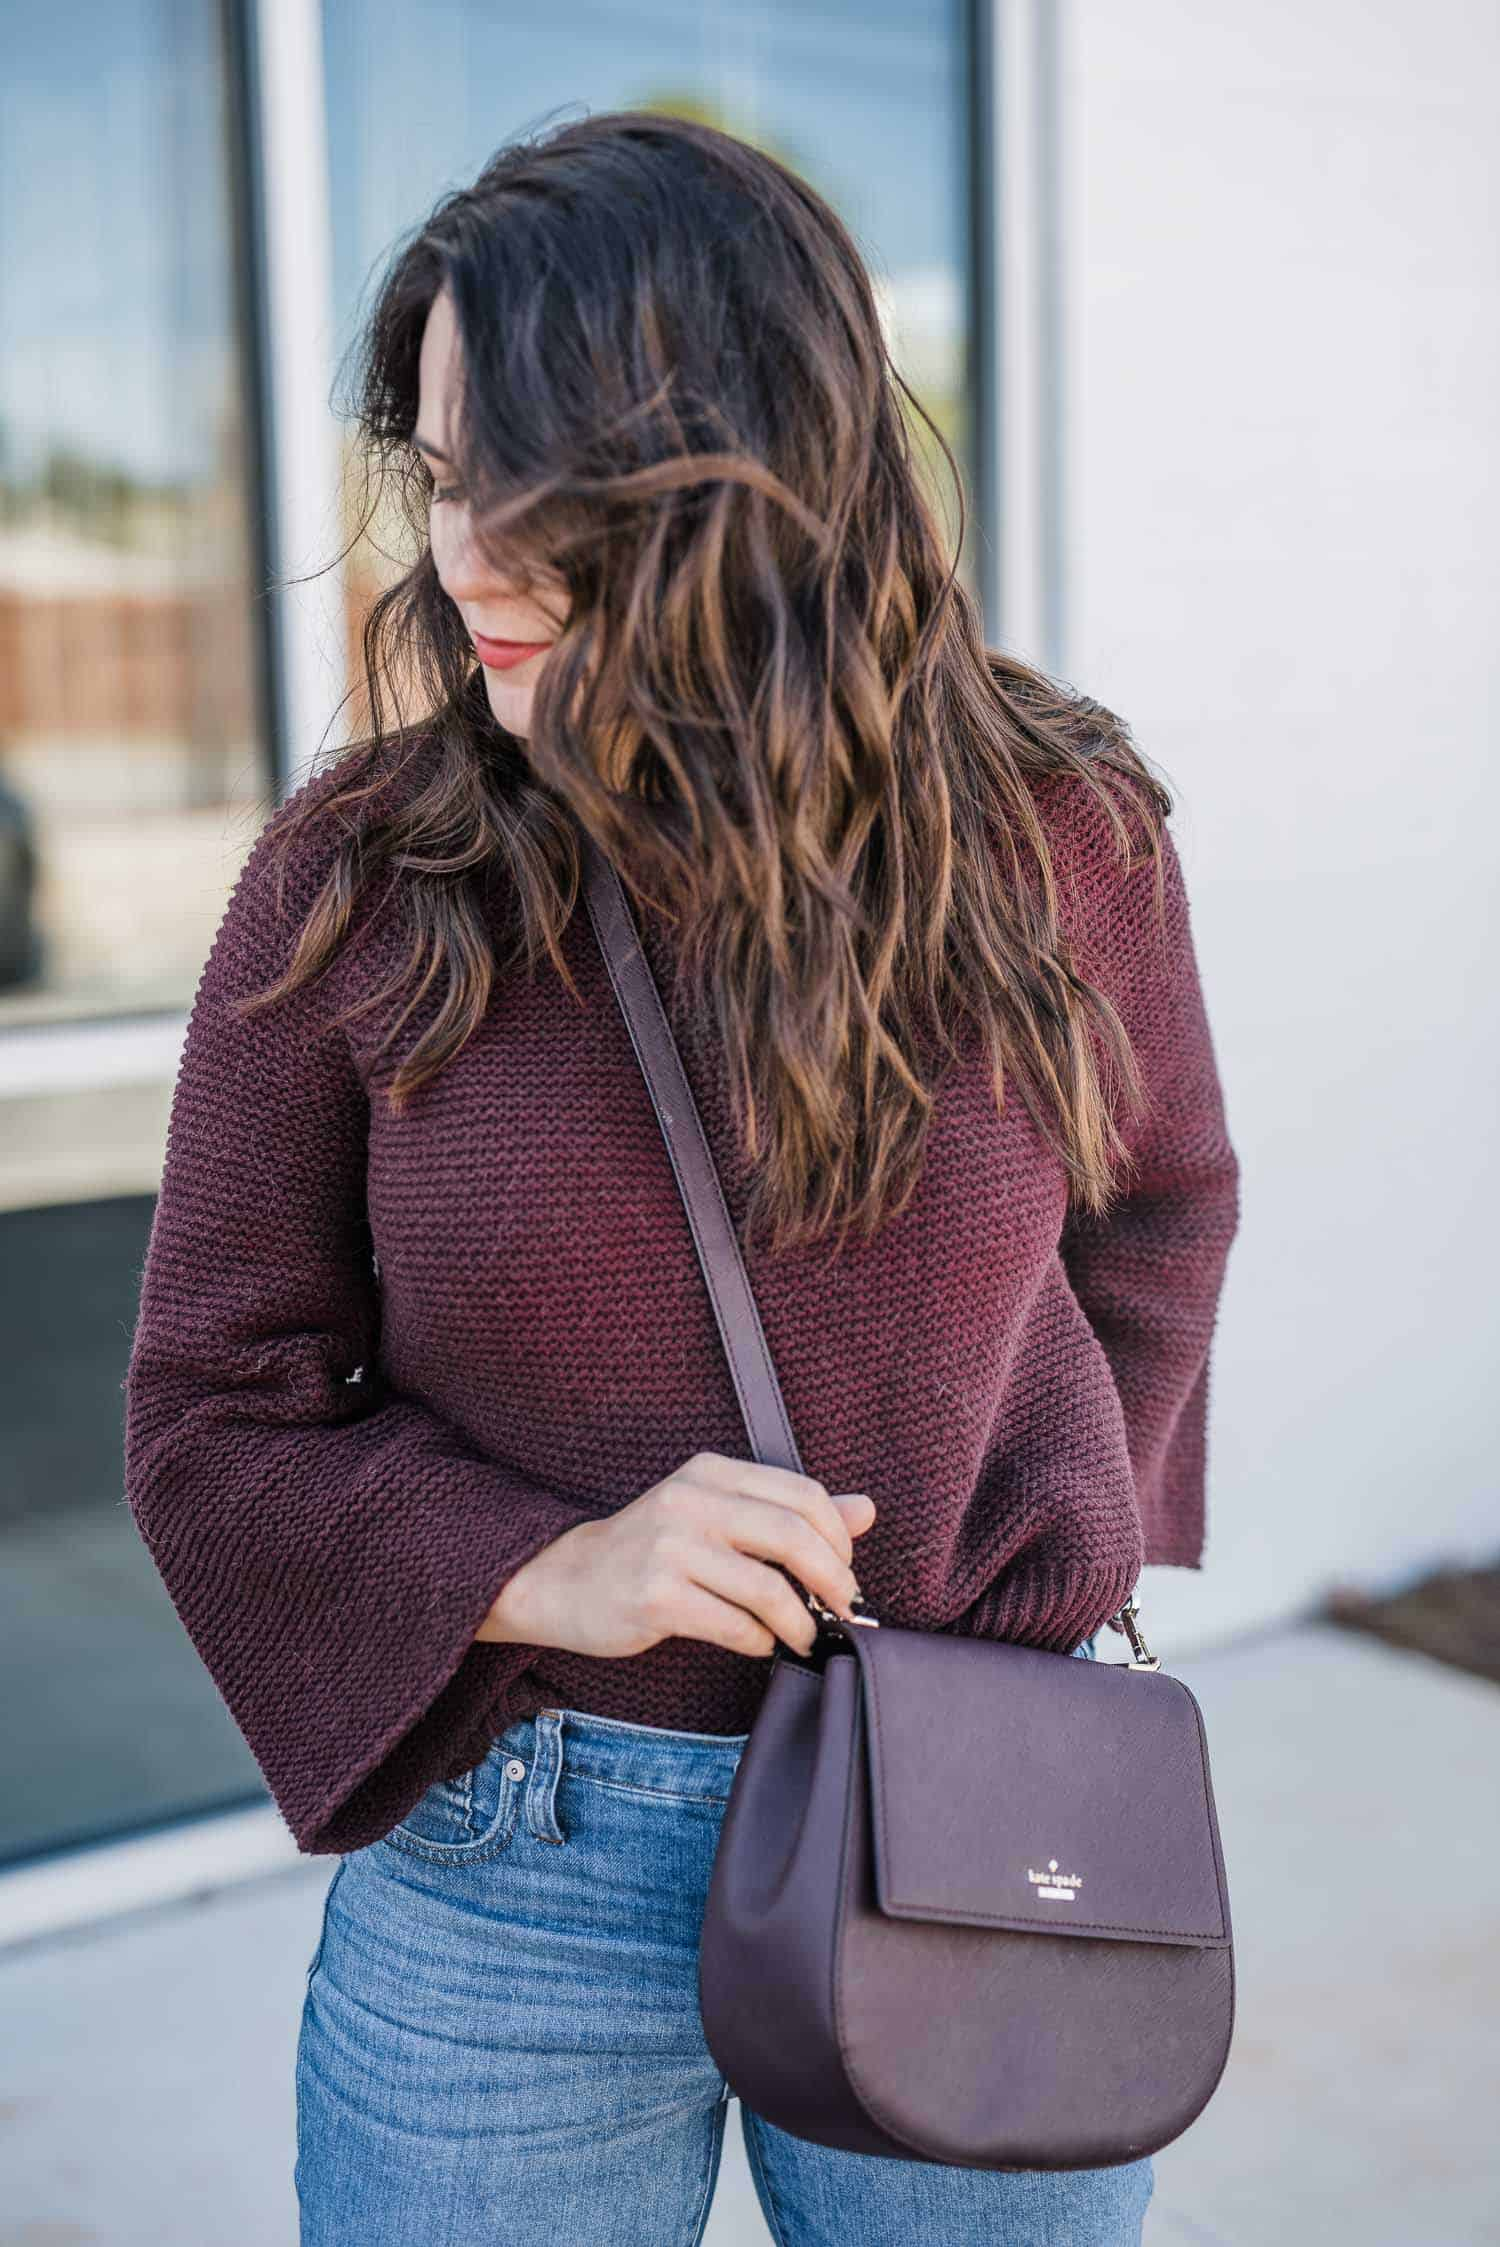 Burgundy And Blush Outfit - burgundy sweater, fall outfit ideas, styling jeans